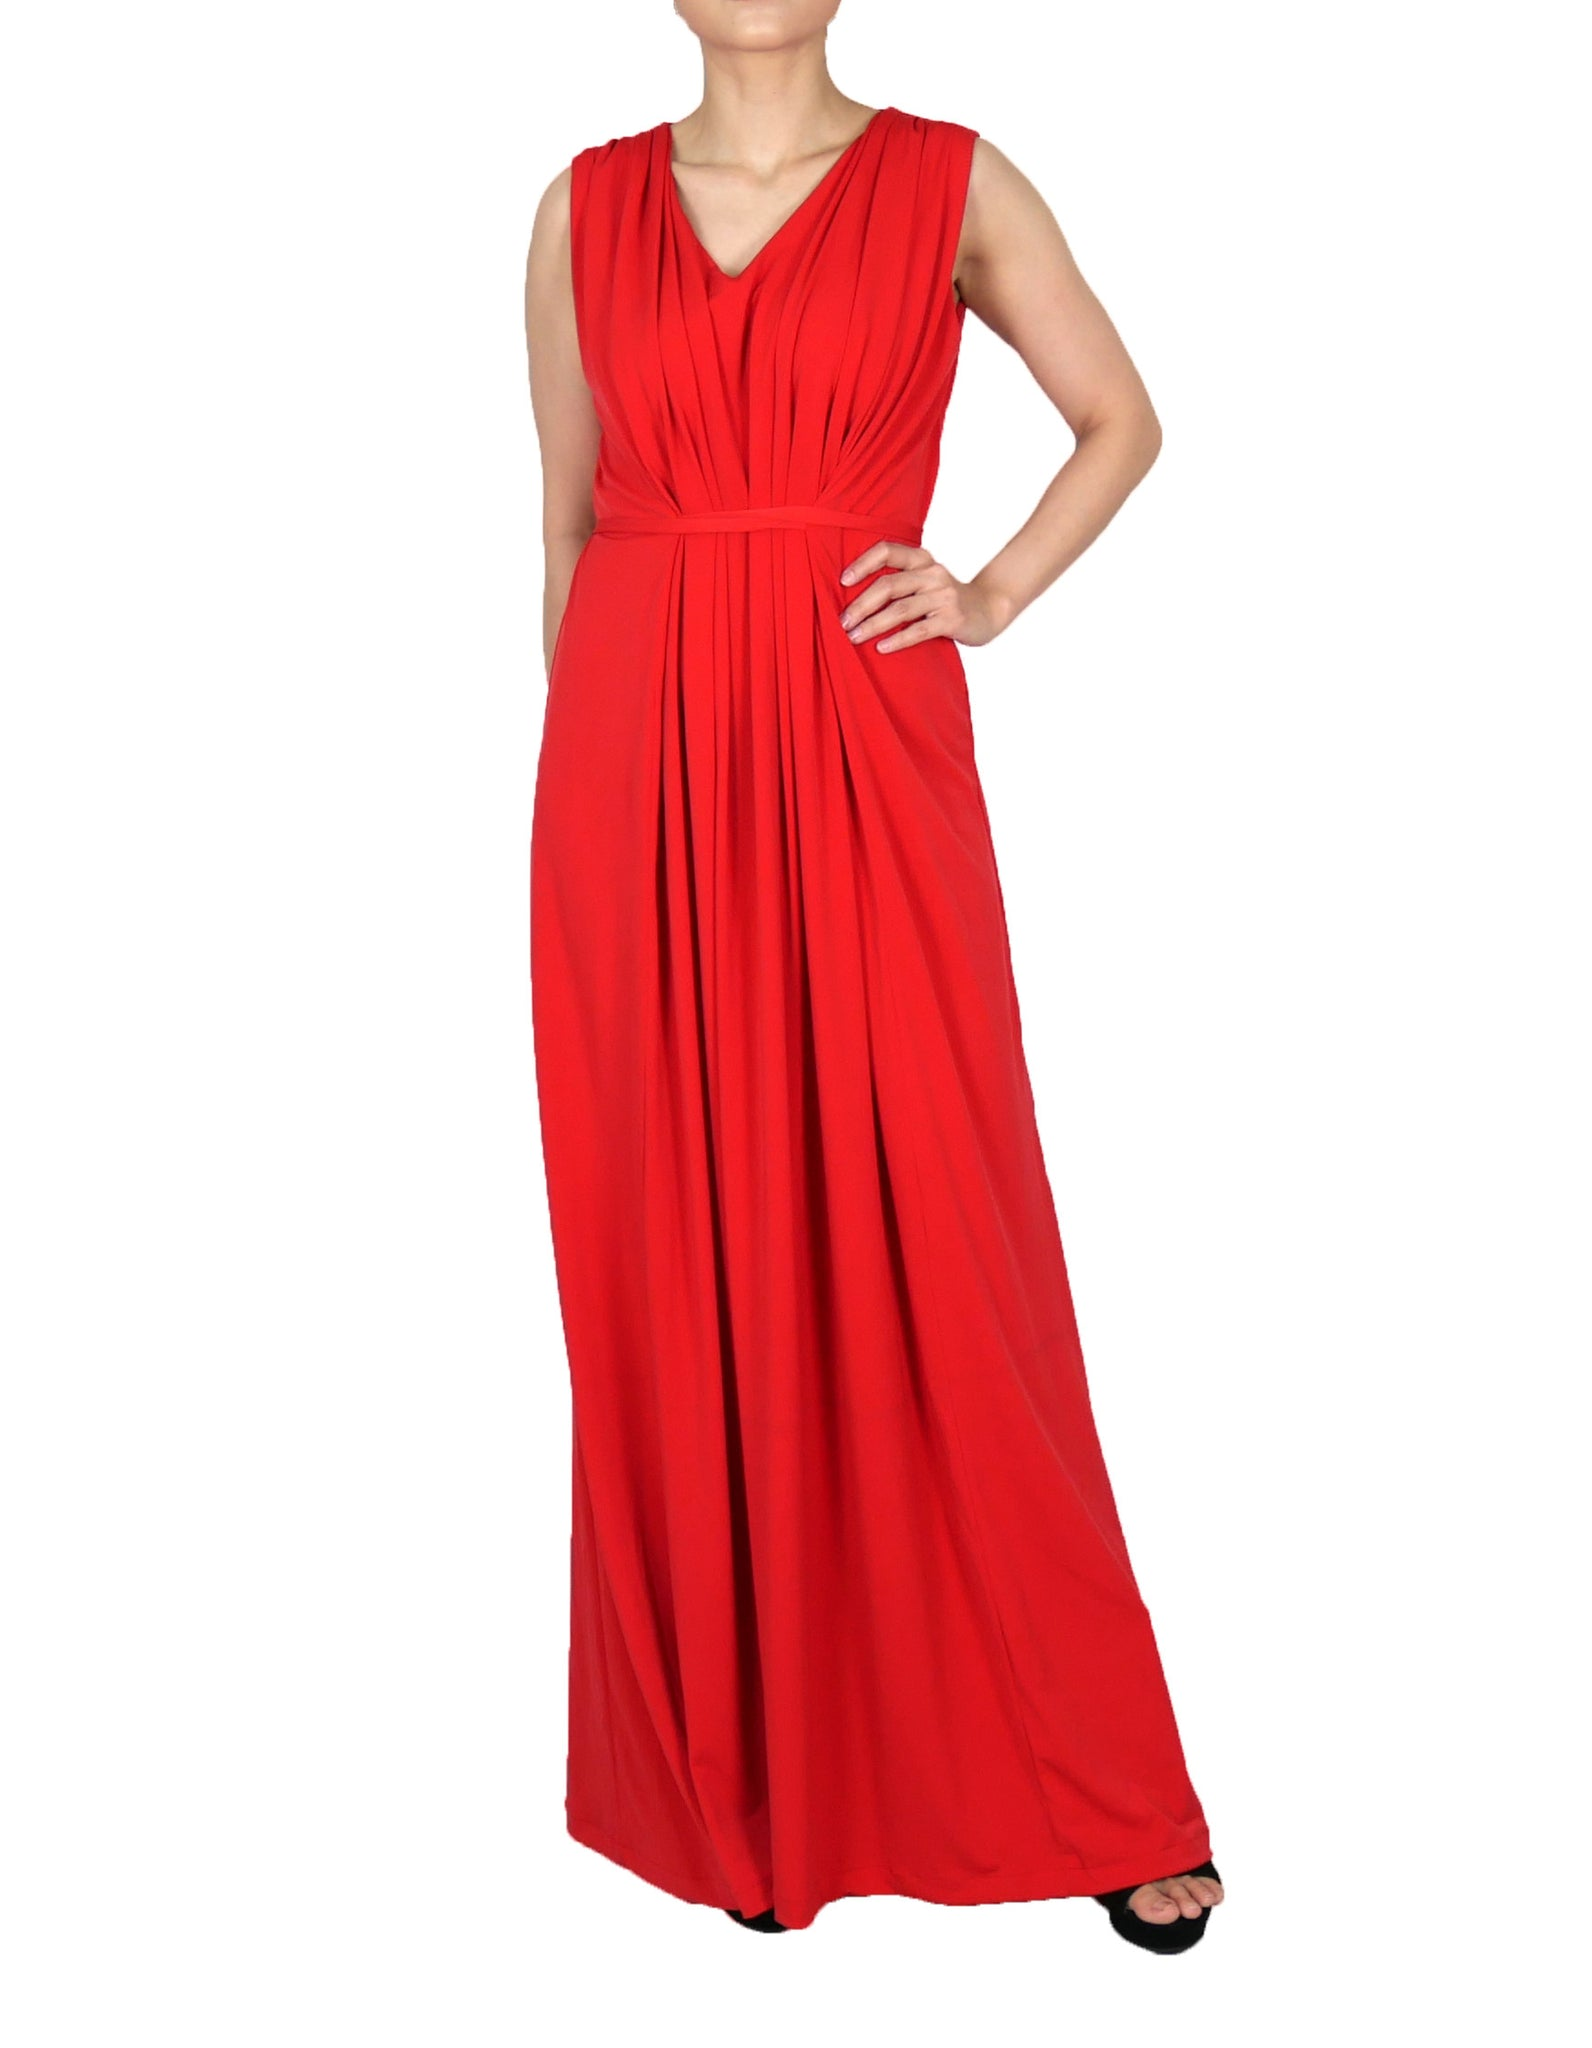 1144ceefd6a5a Long Formal Dresses Sleeveless plain color Red – MERLOT